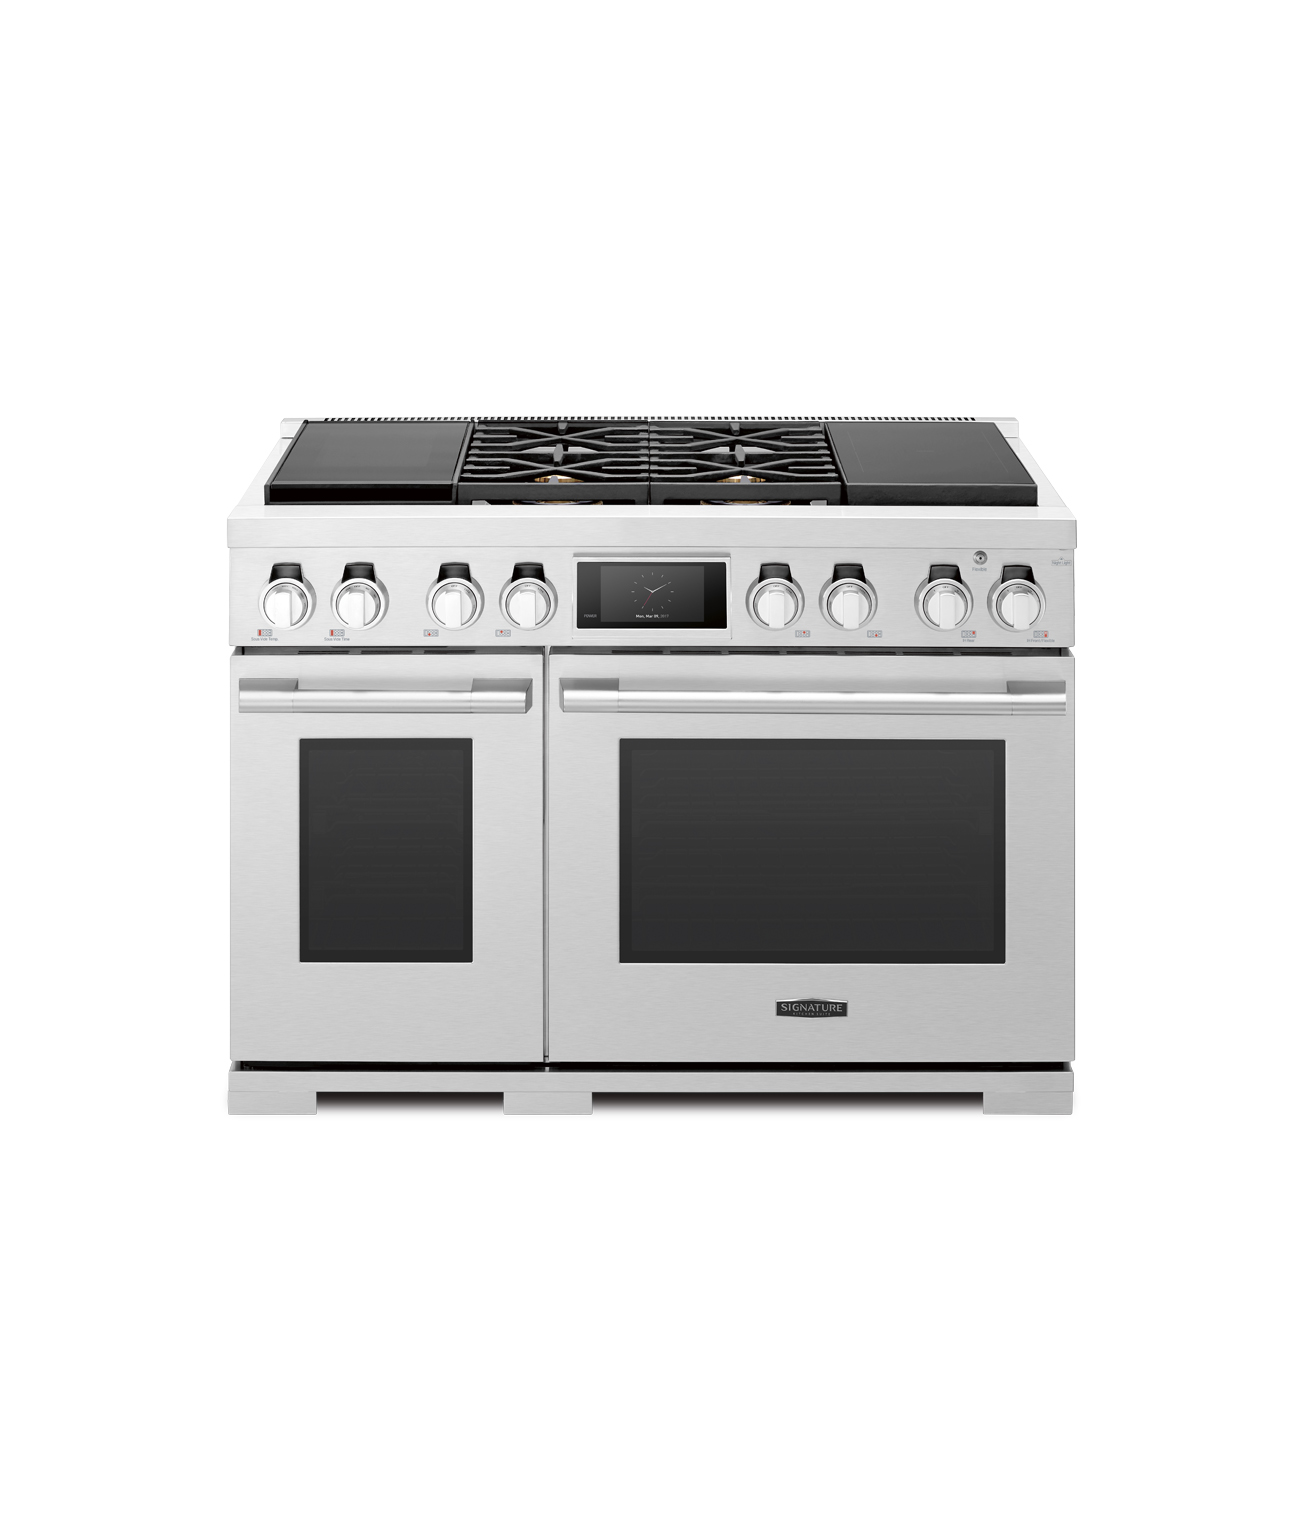 48-inch Dual Fuel Pro Range with Sous Vide and Induction